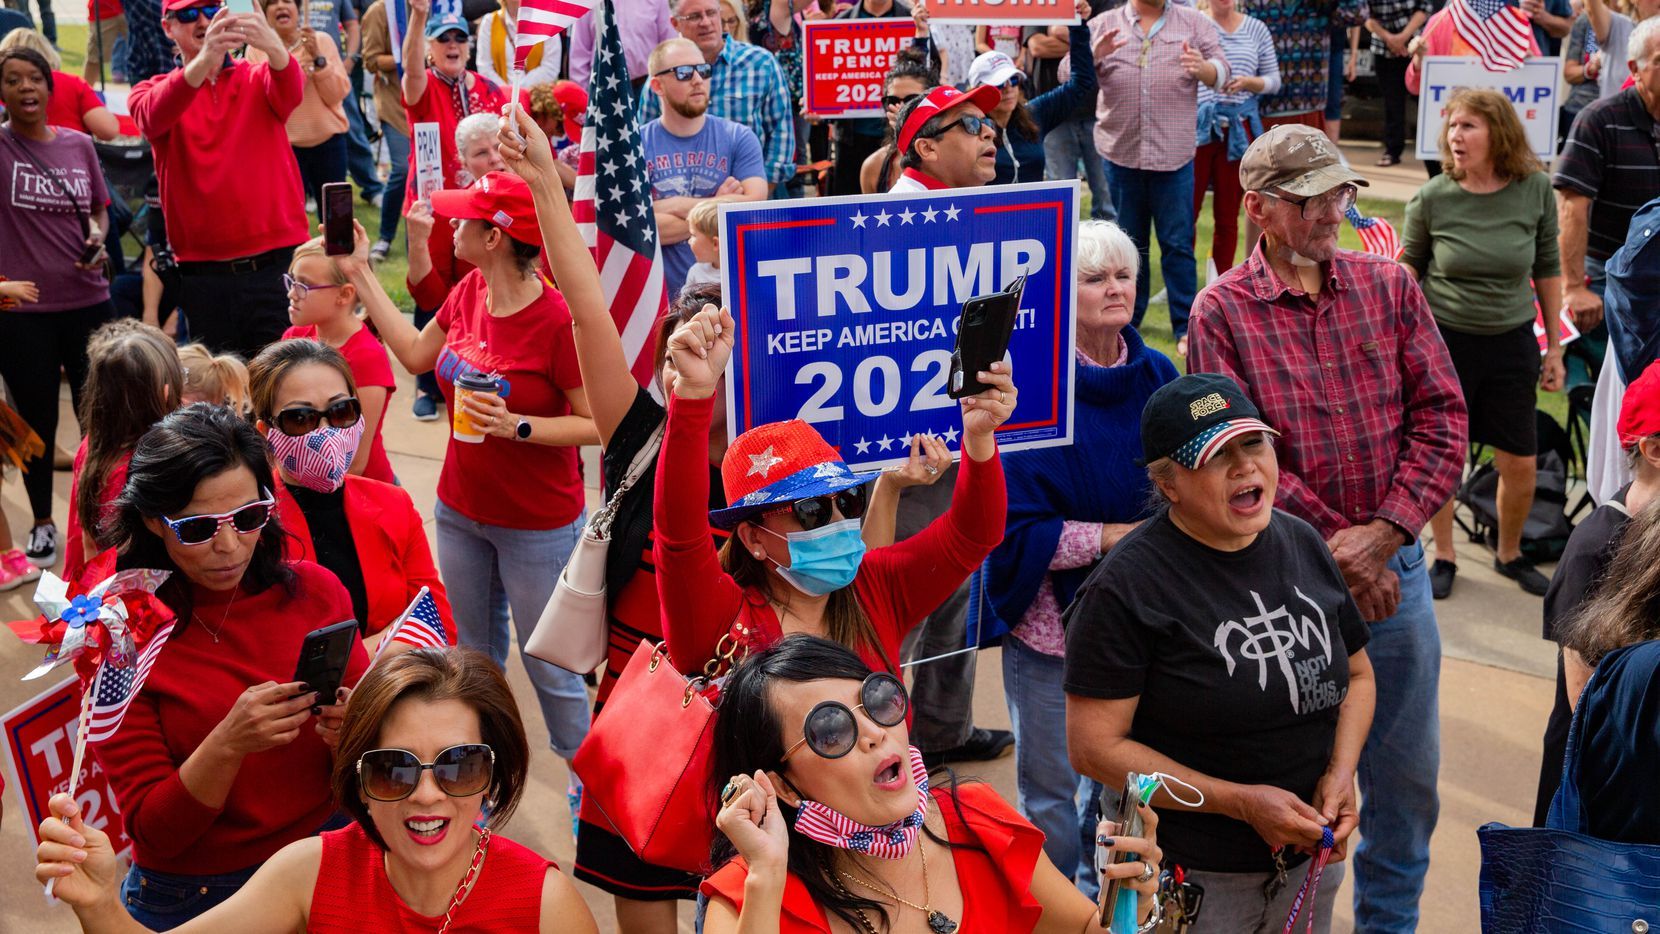 Trump supporters gather for an America is Great rally hosted by TrumpTrain 2020 DFW at Rockwall County Courthouse in Rockwall on Sunday, Nov. 8, 2020.